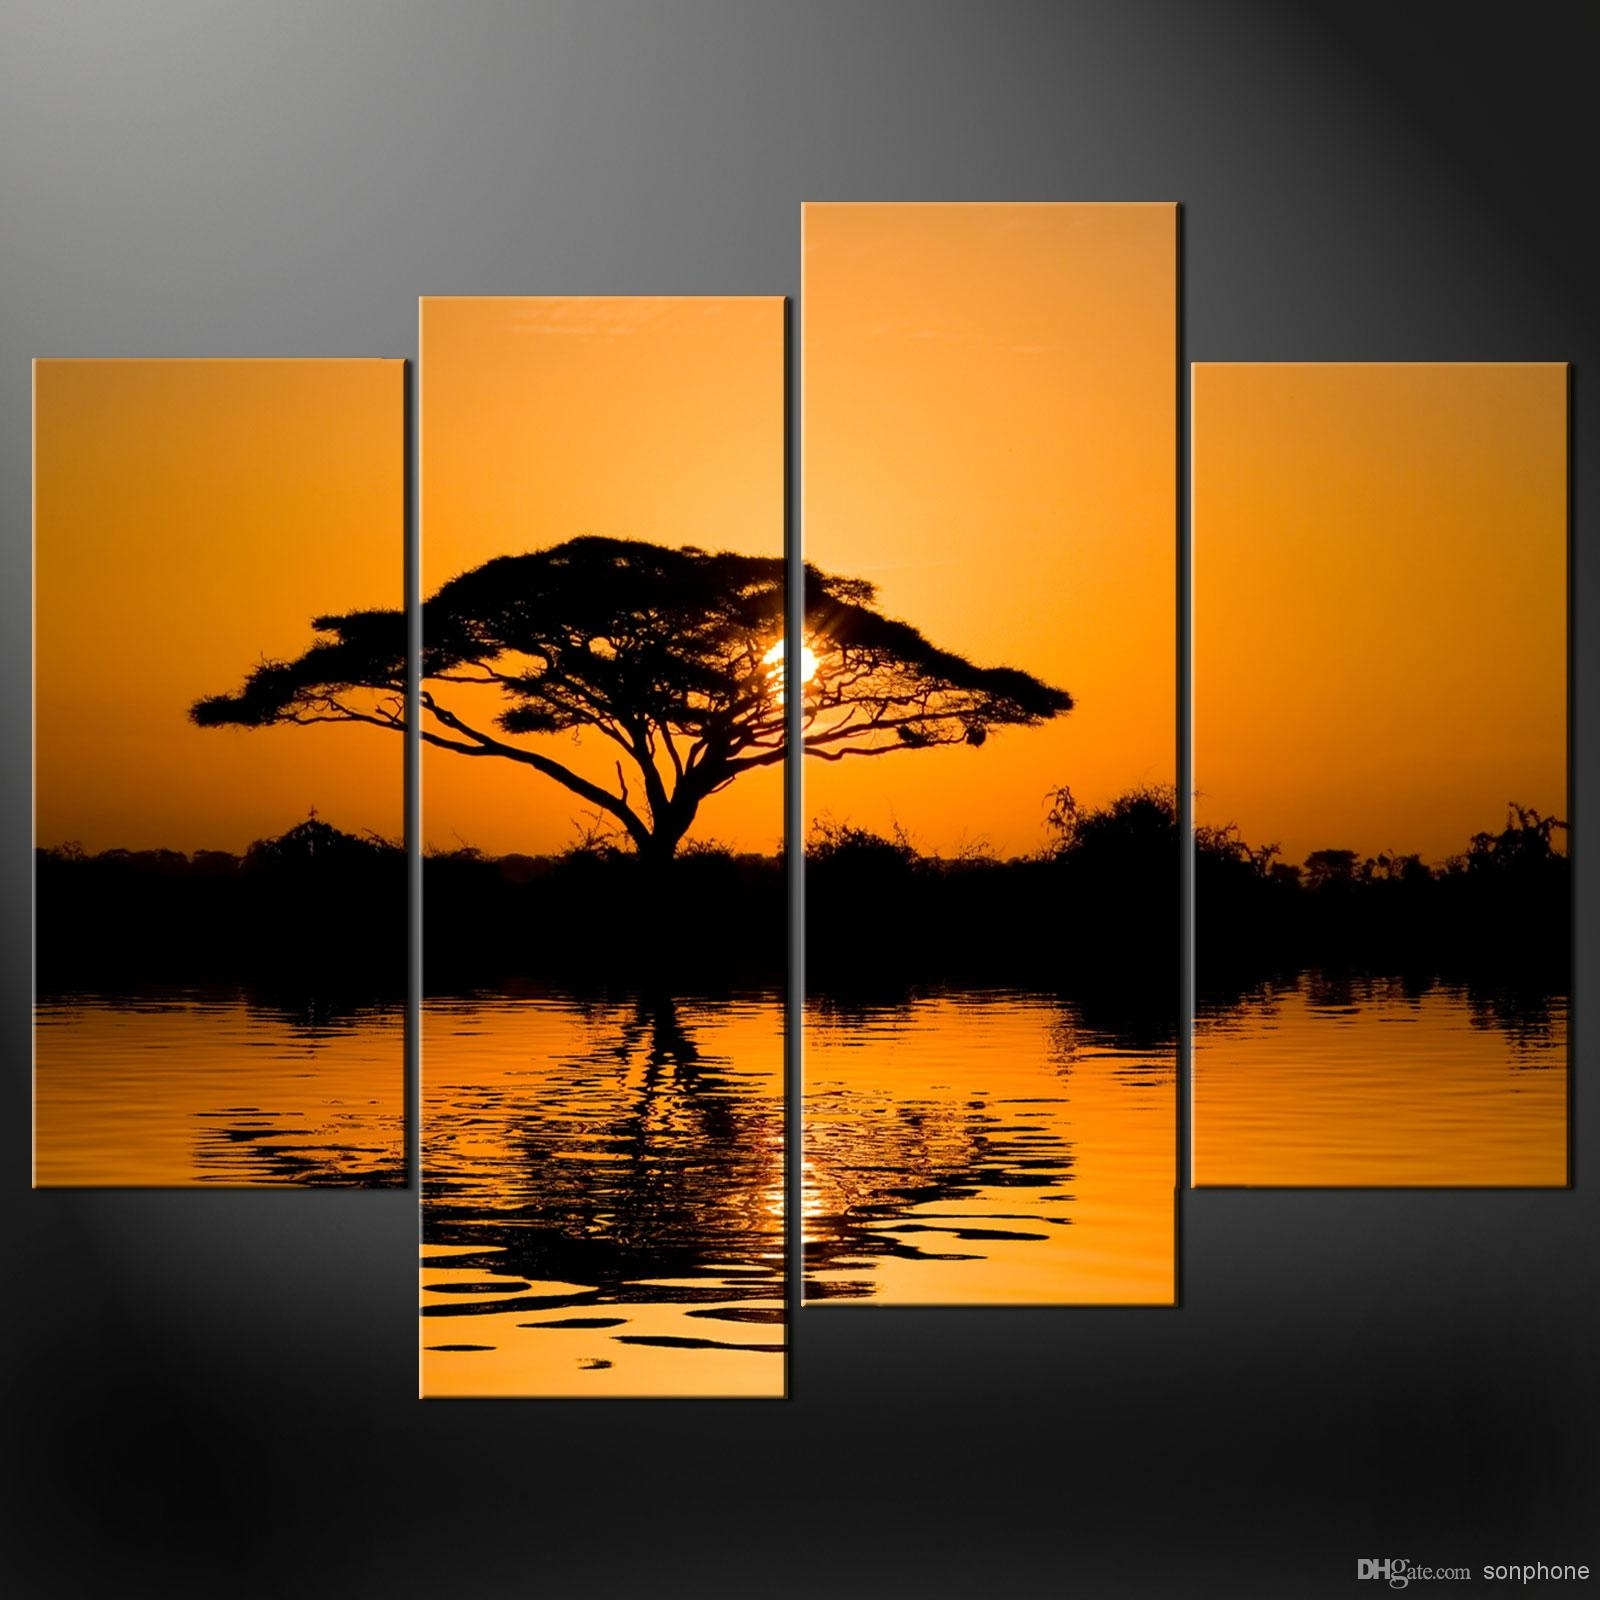 Framed 4 Panel Large African Wall Art Decor Modern Sunset Oil pertaining to Modern Framed Wall Art Canvas (Image 12 of 20)